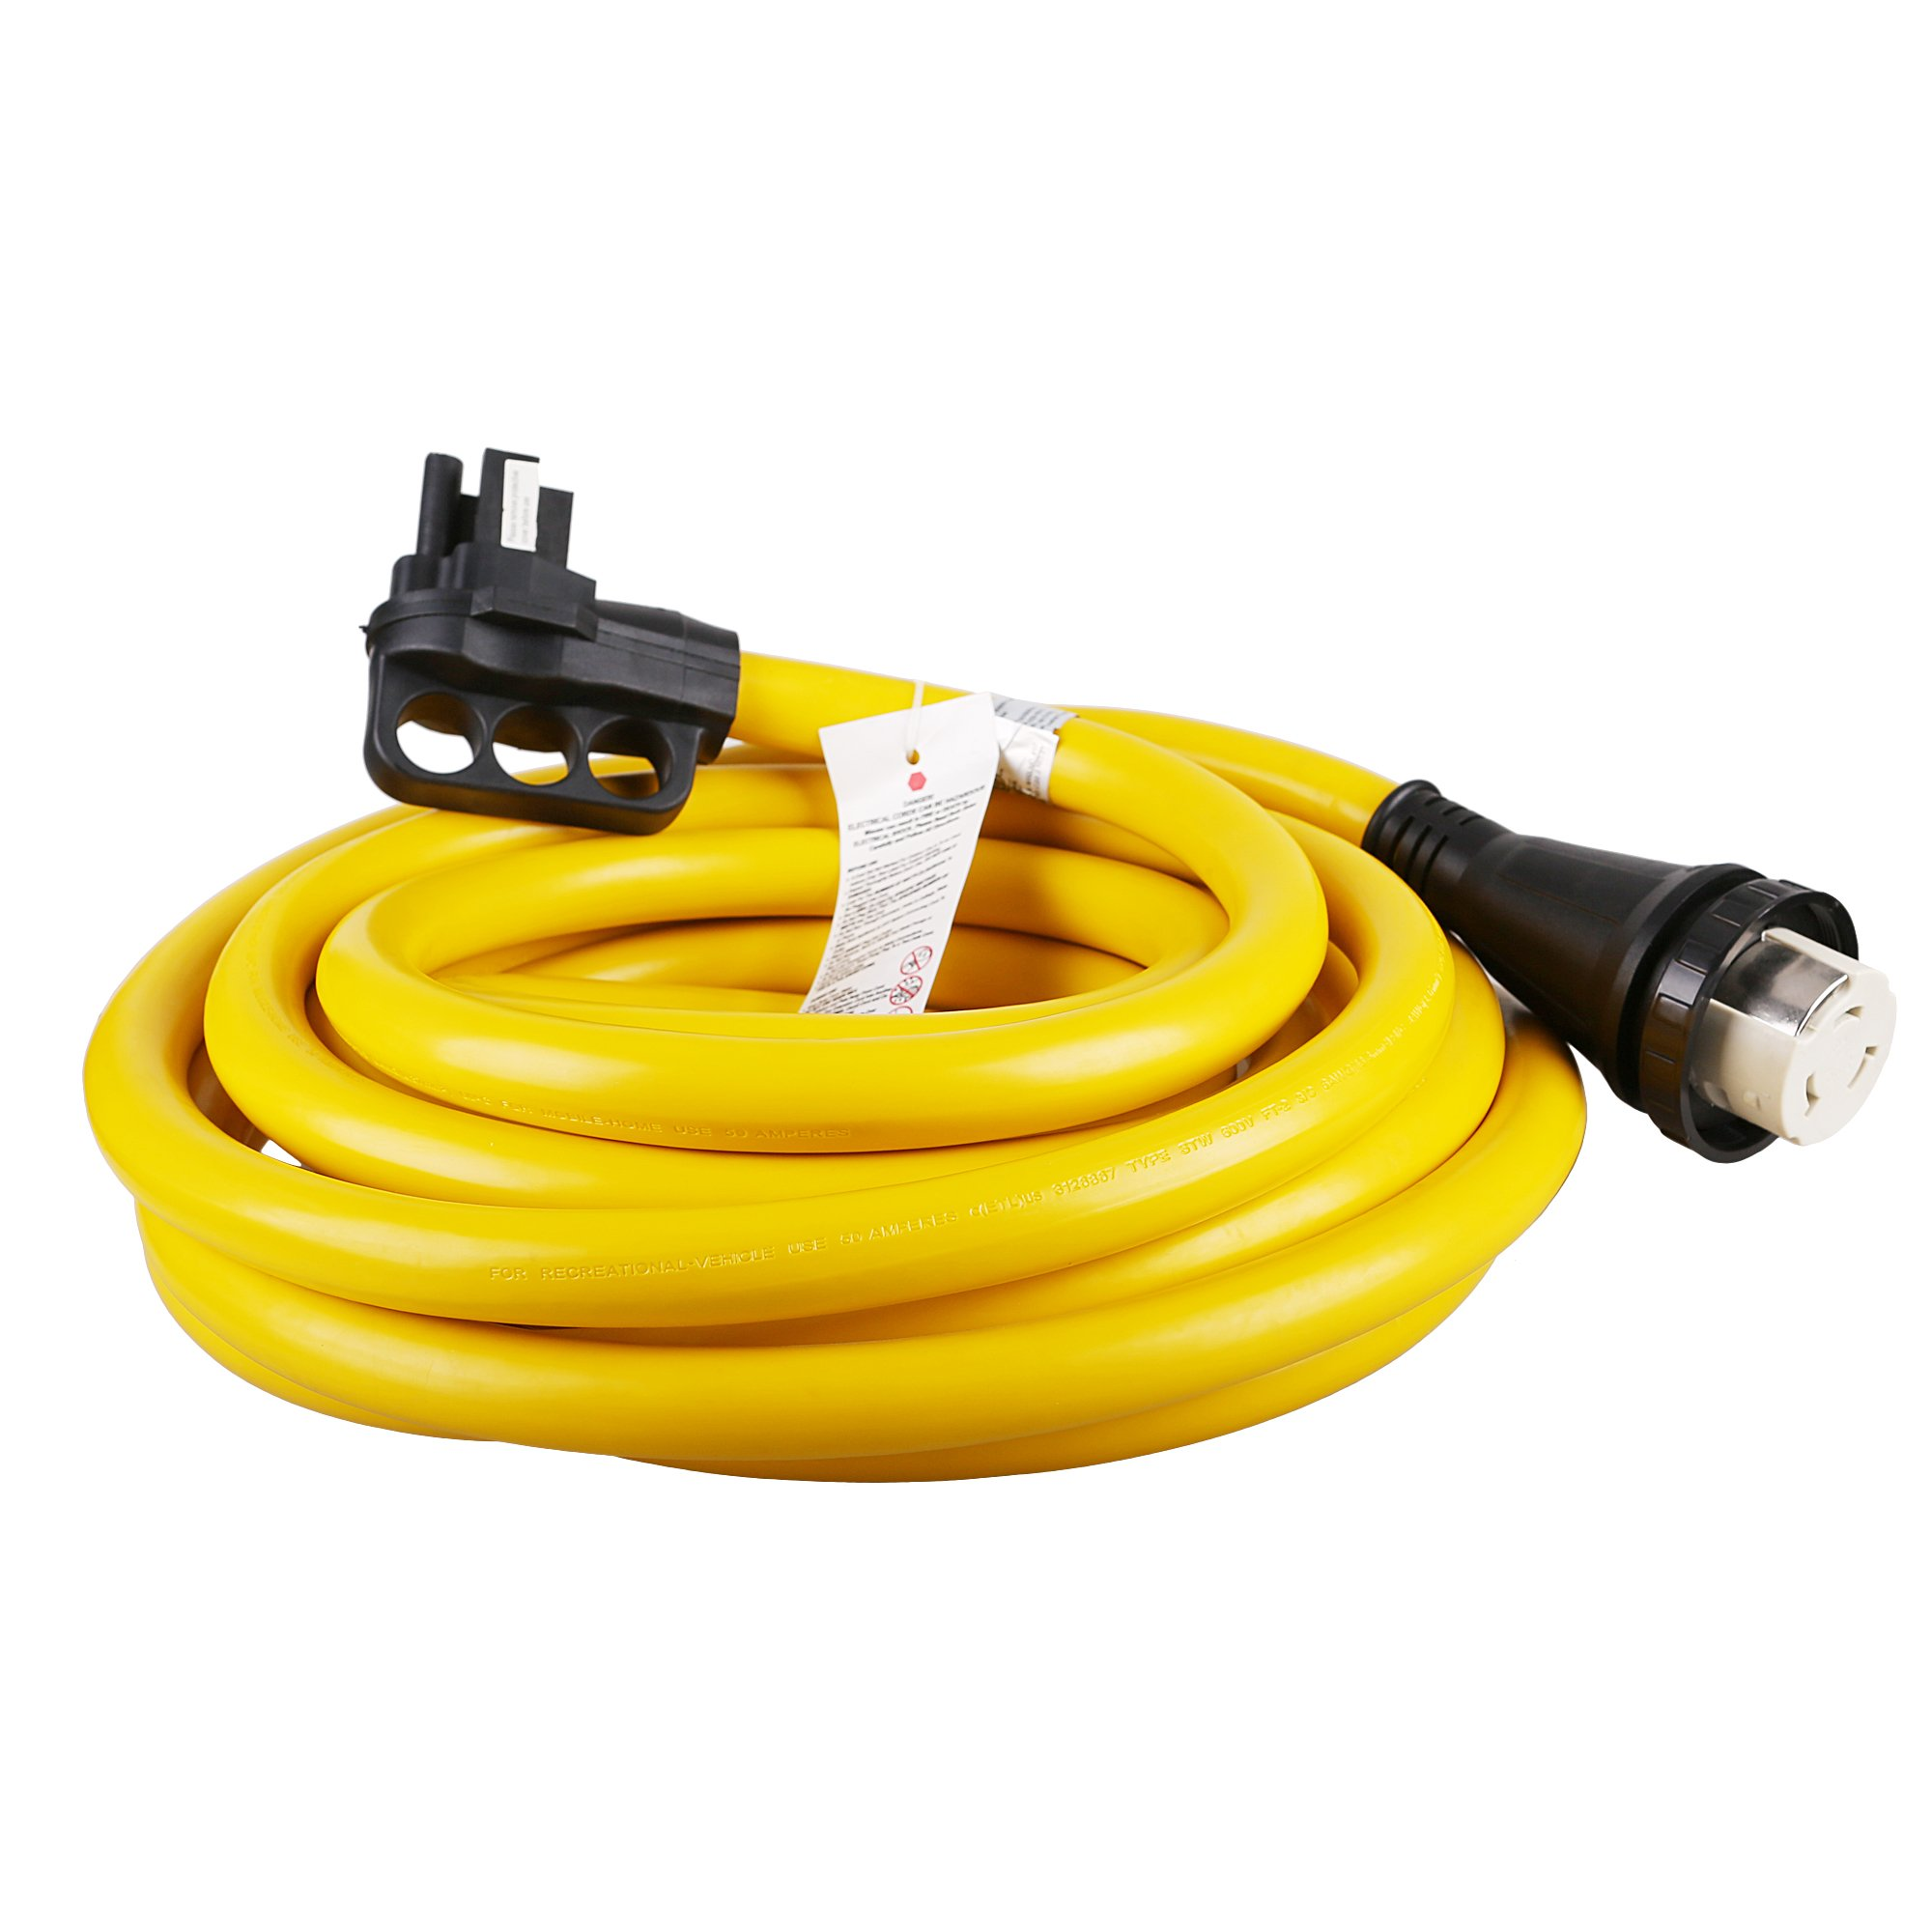 EPICORD RV Extension Cord 50Amp For Trailer Motorhome Camper with Grip Handle Plug, Locking Connector, 30F 125VT